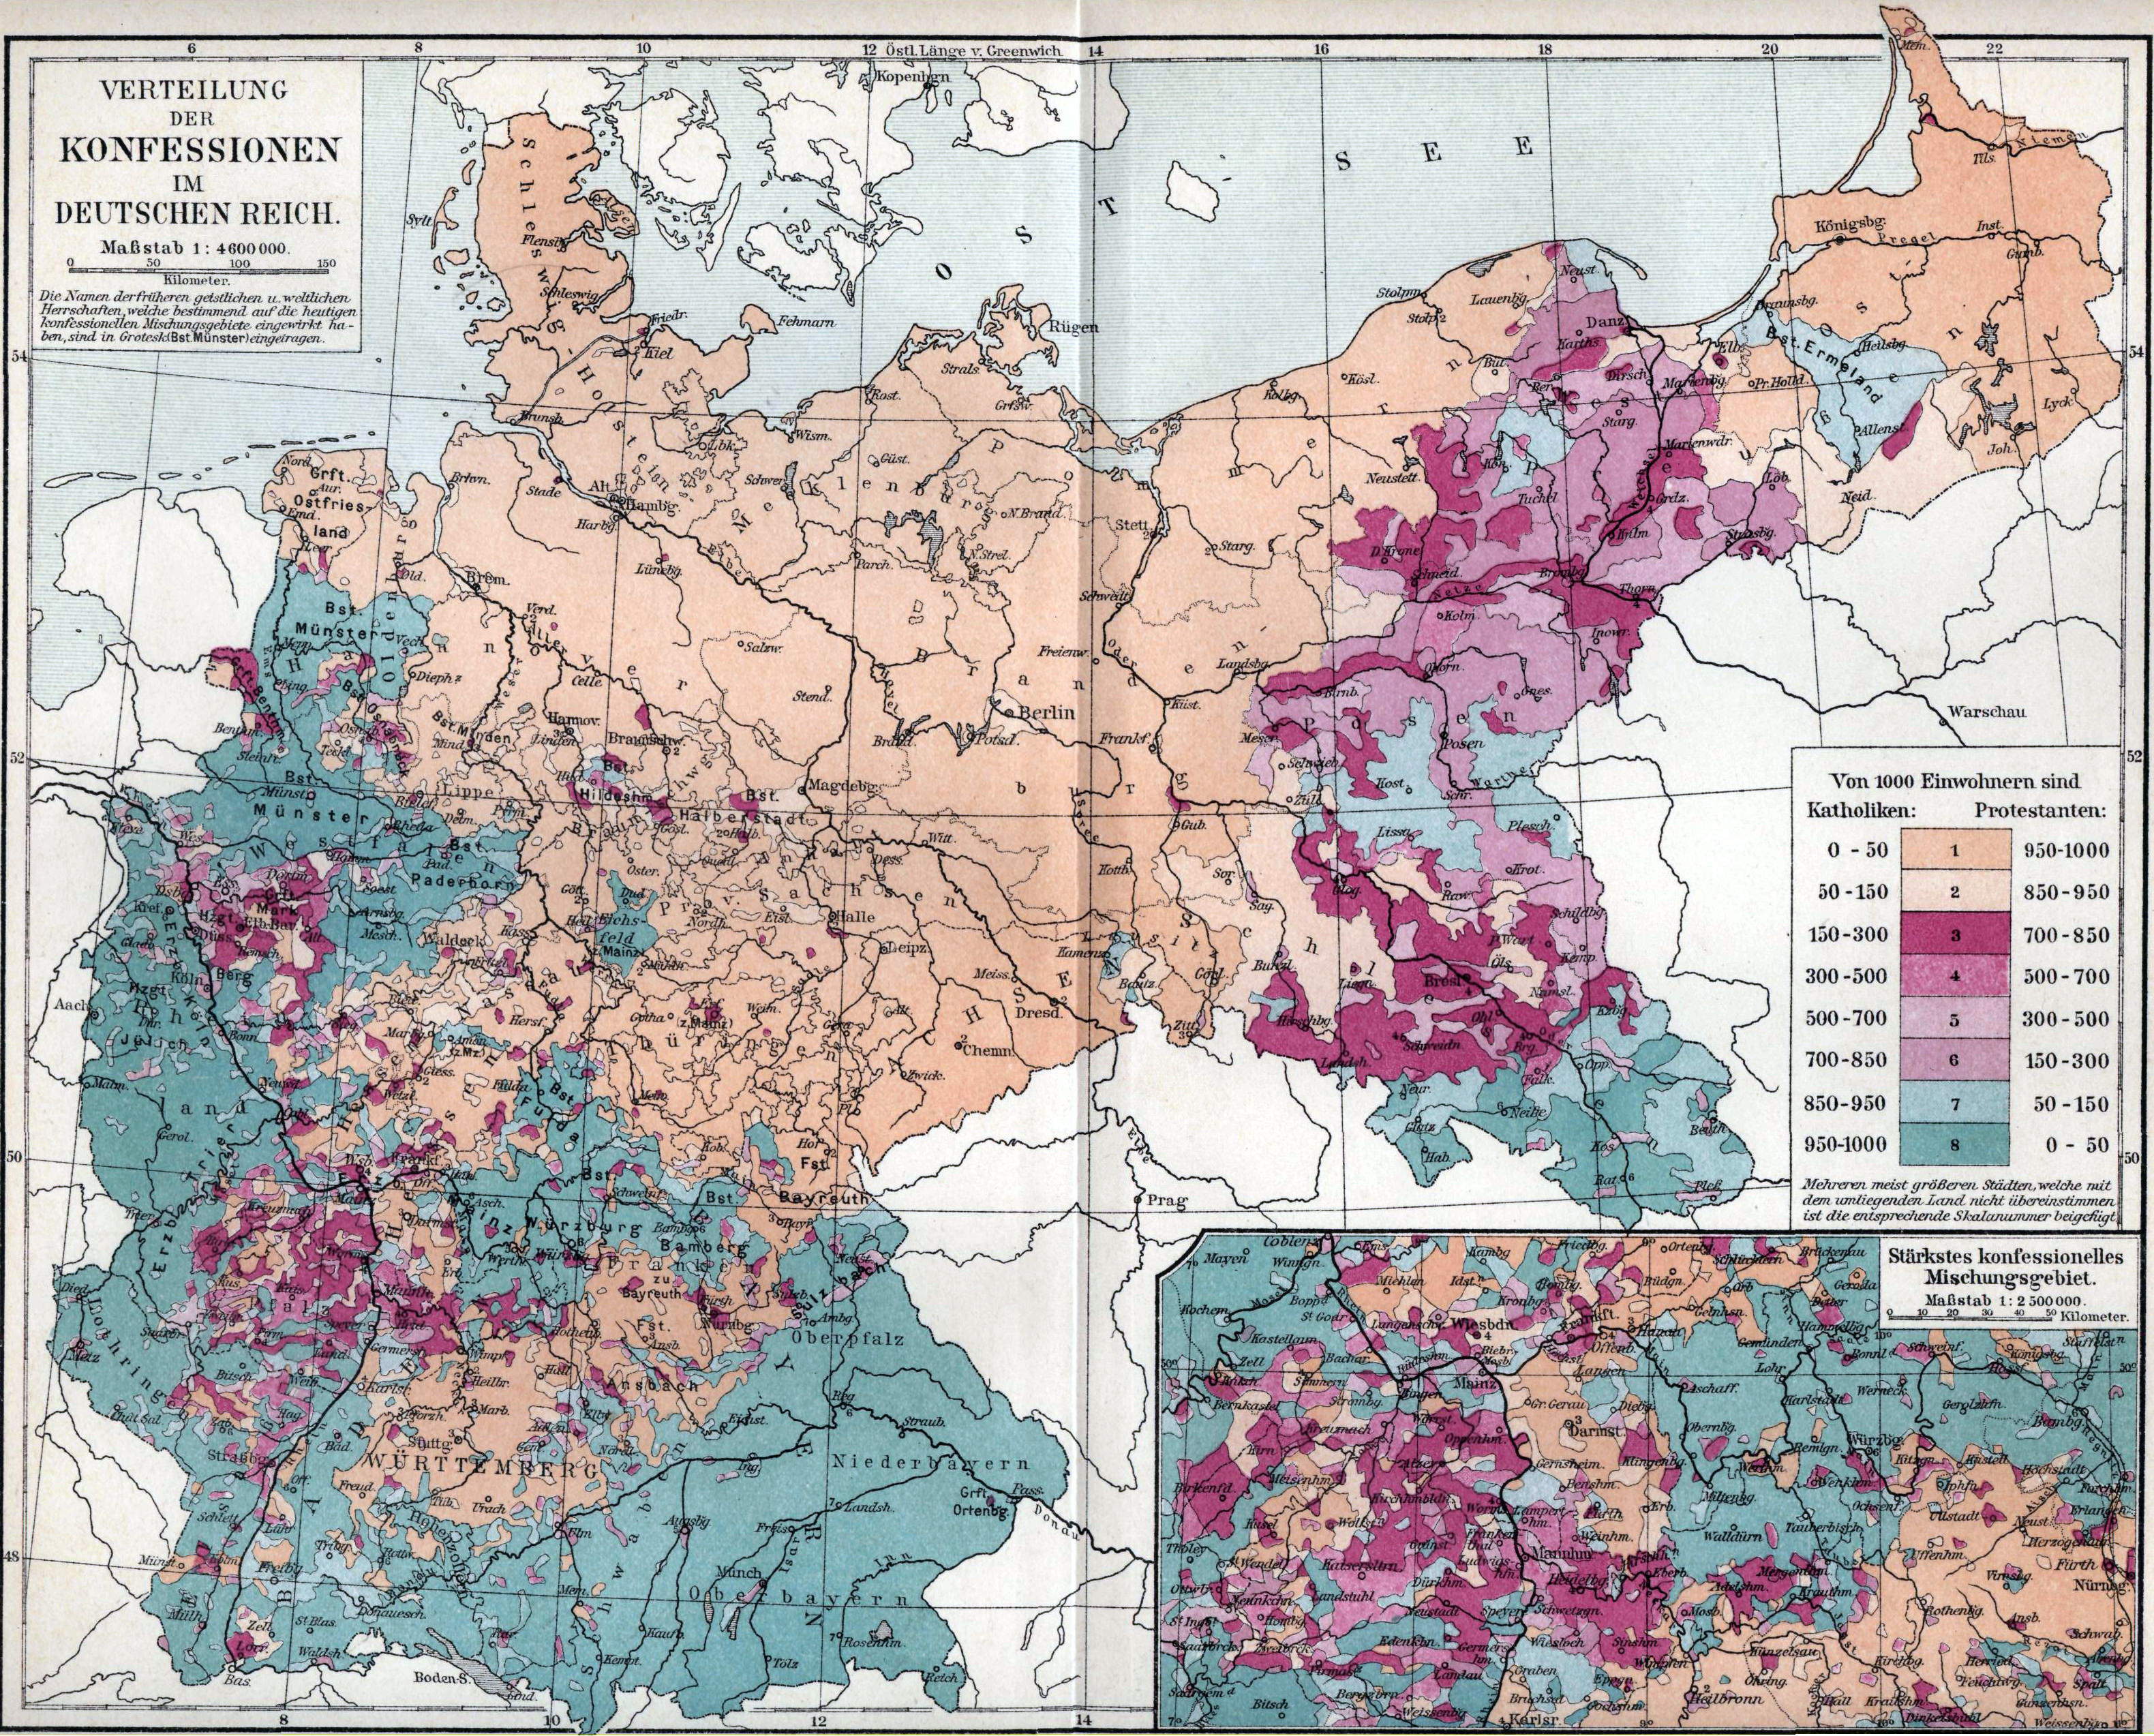 1890s_map_of_distribution_of_catholics_and_protestants_in_the_german_reich_65827